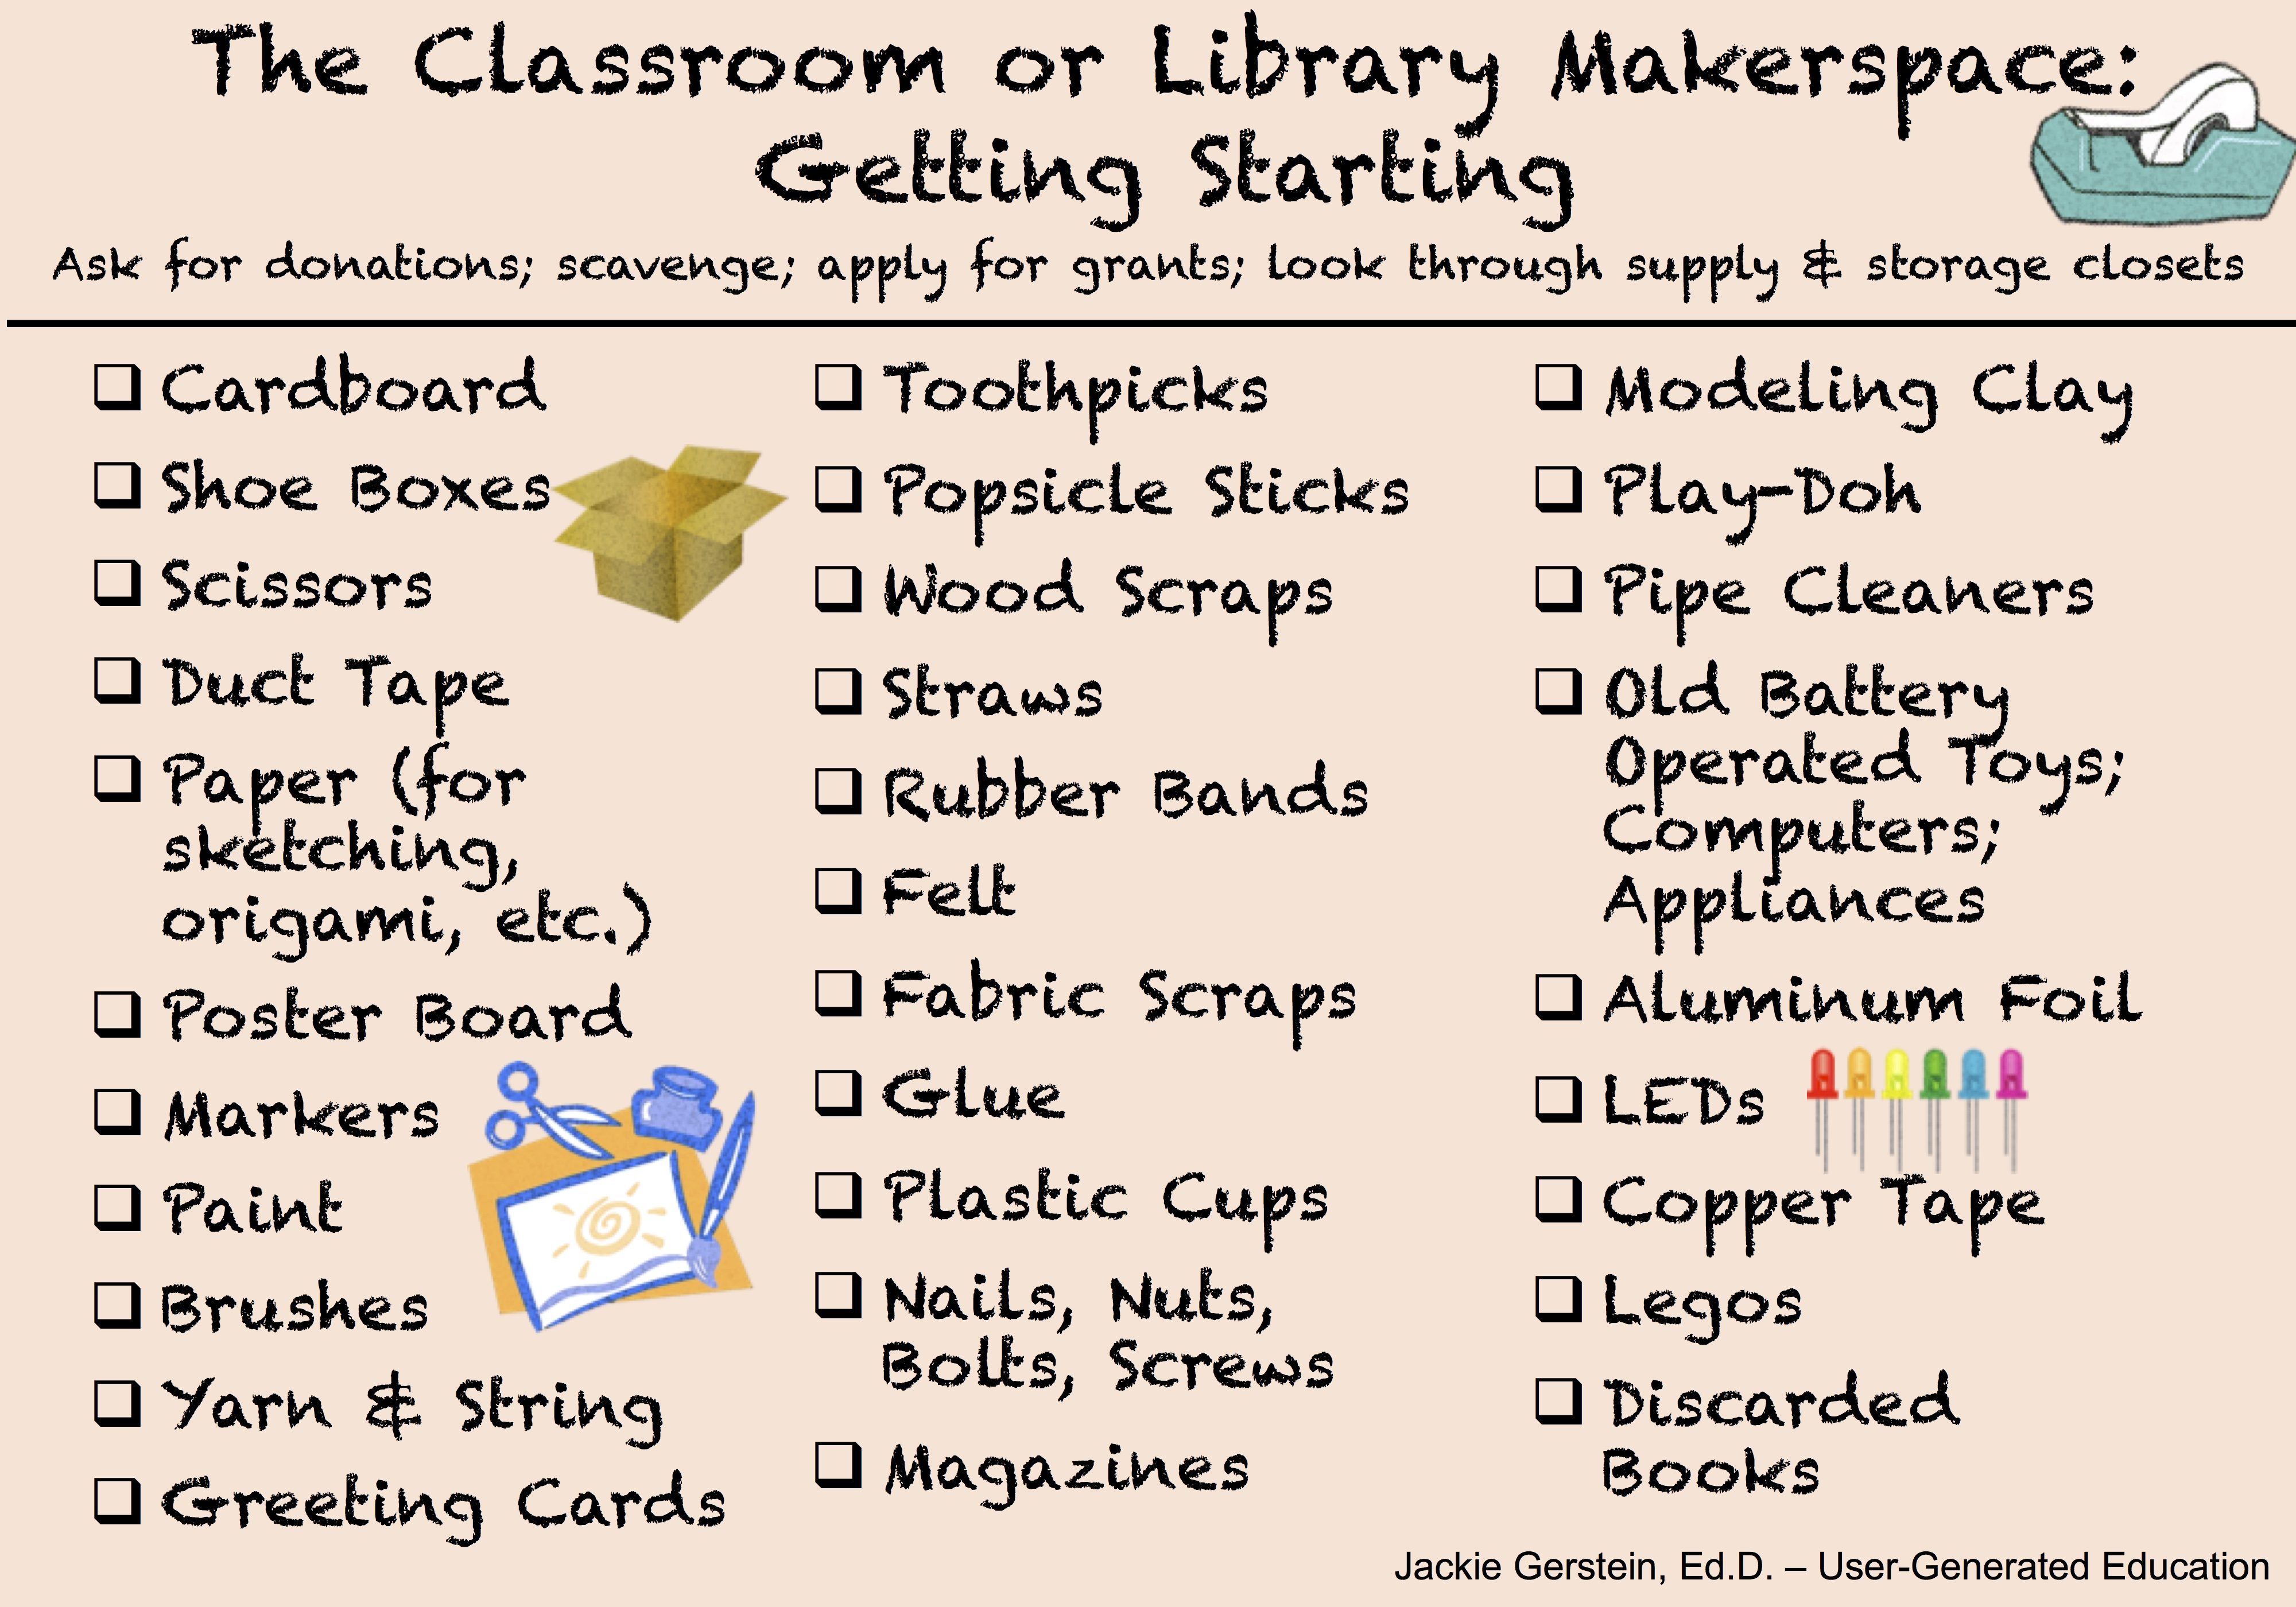 Makerspace materials